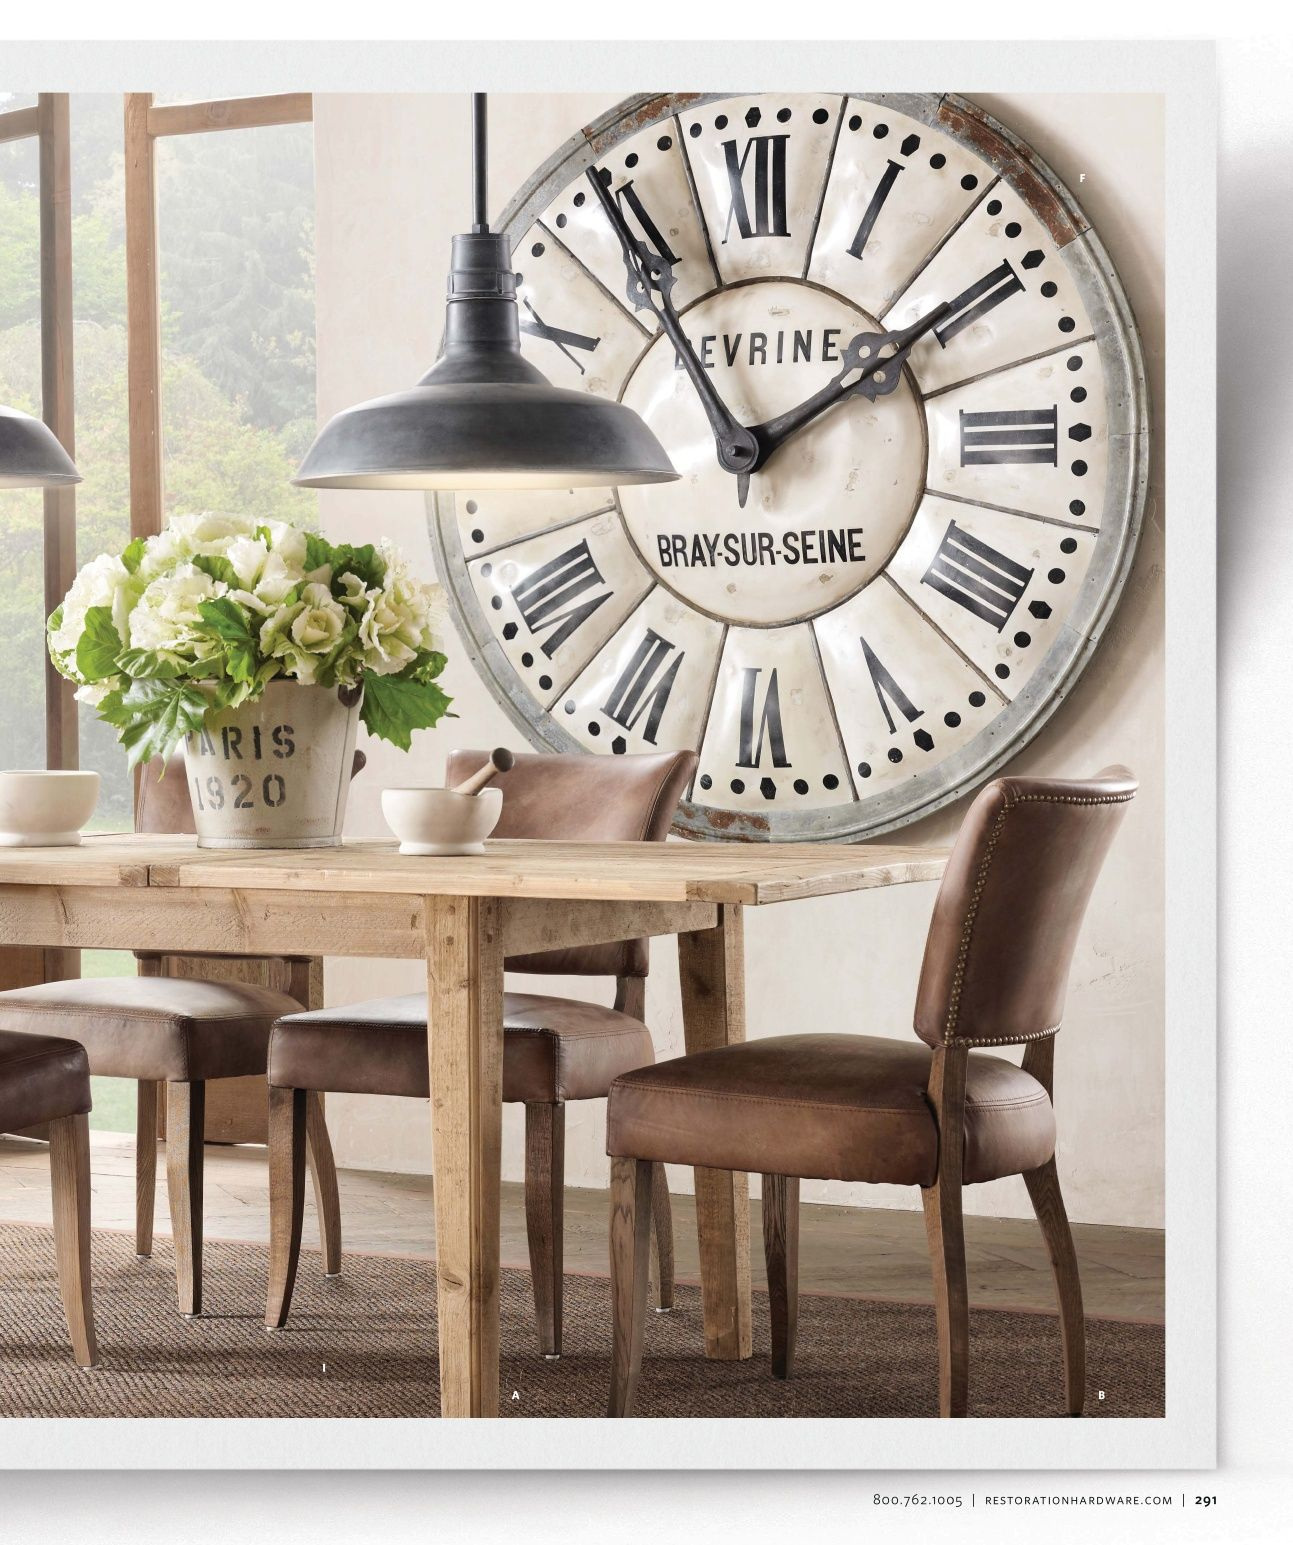 Living Room Clocks Part - 36: Decorative Large Clock In Dining Room Living Room Spiration .